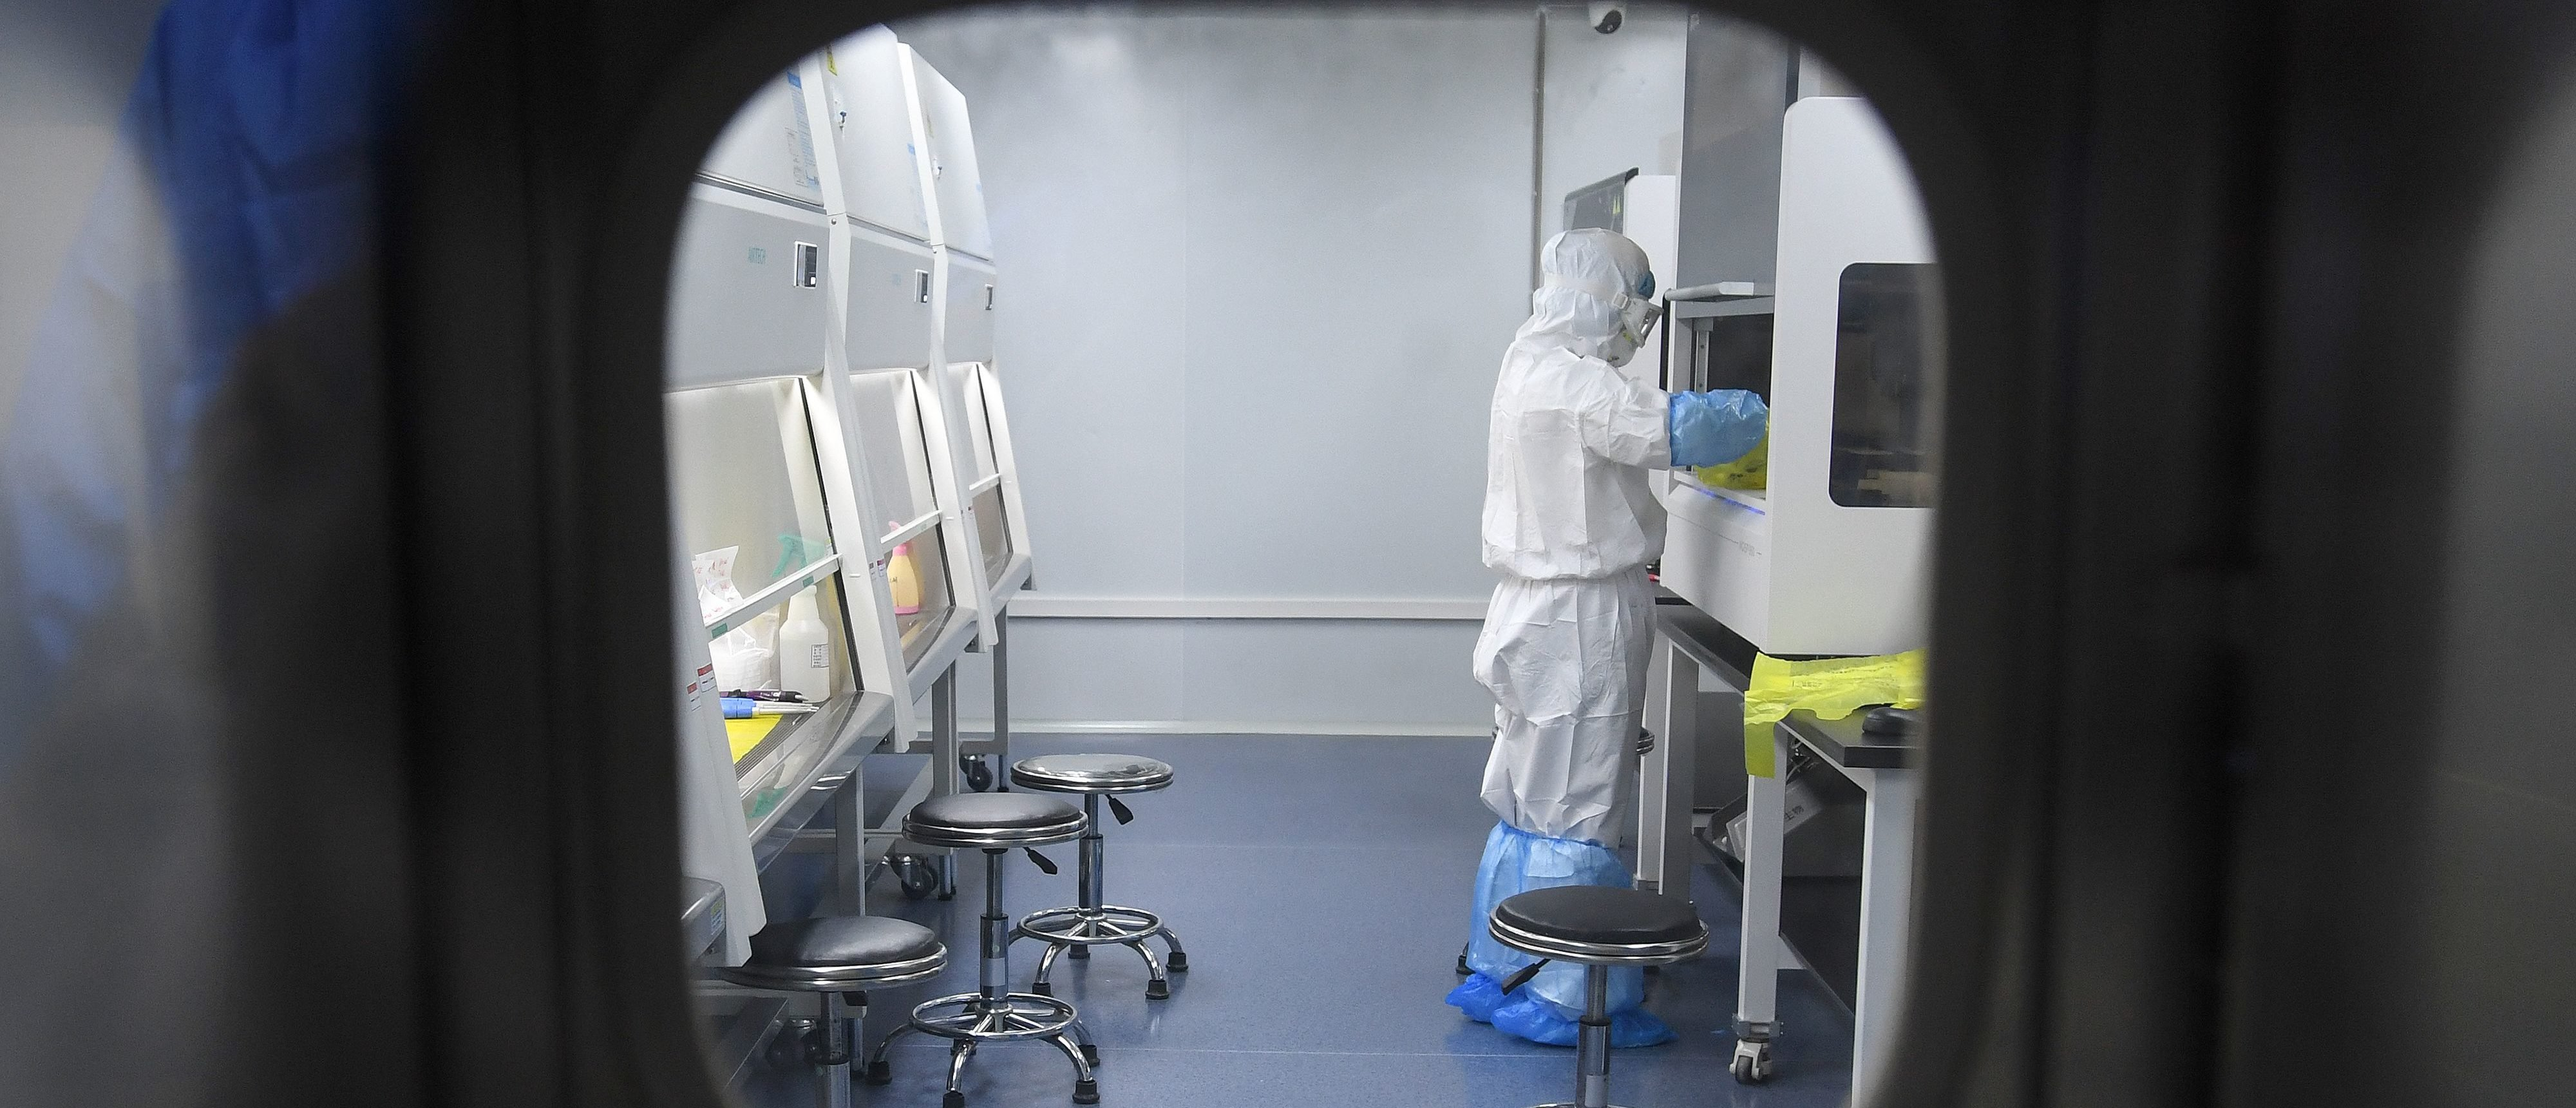 EXCLUSIVE: Coronavirus Expert Says Virus Could Have Leaked From Wuhan Lab